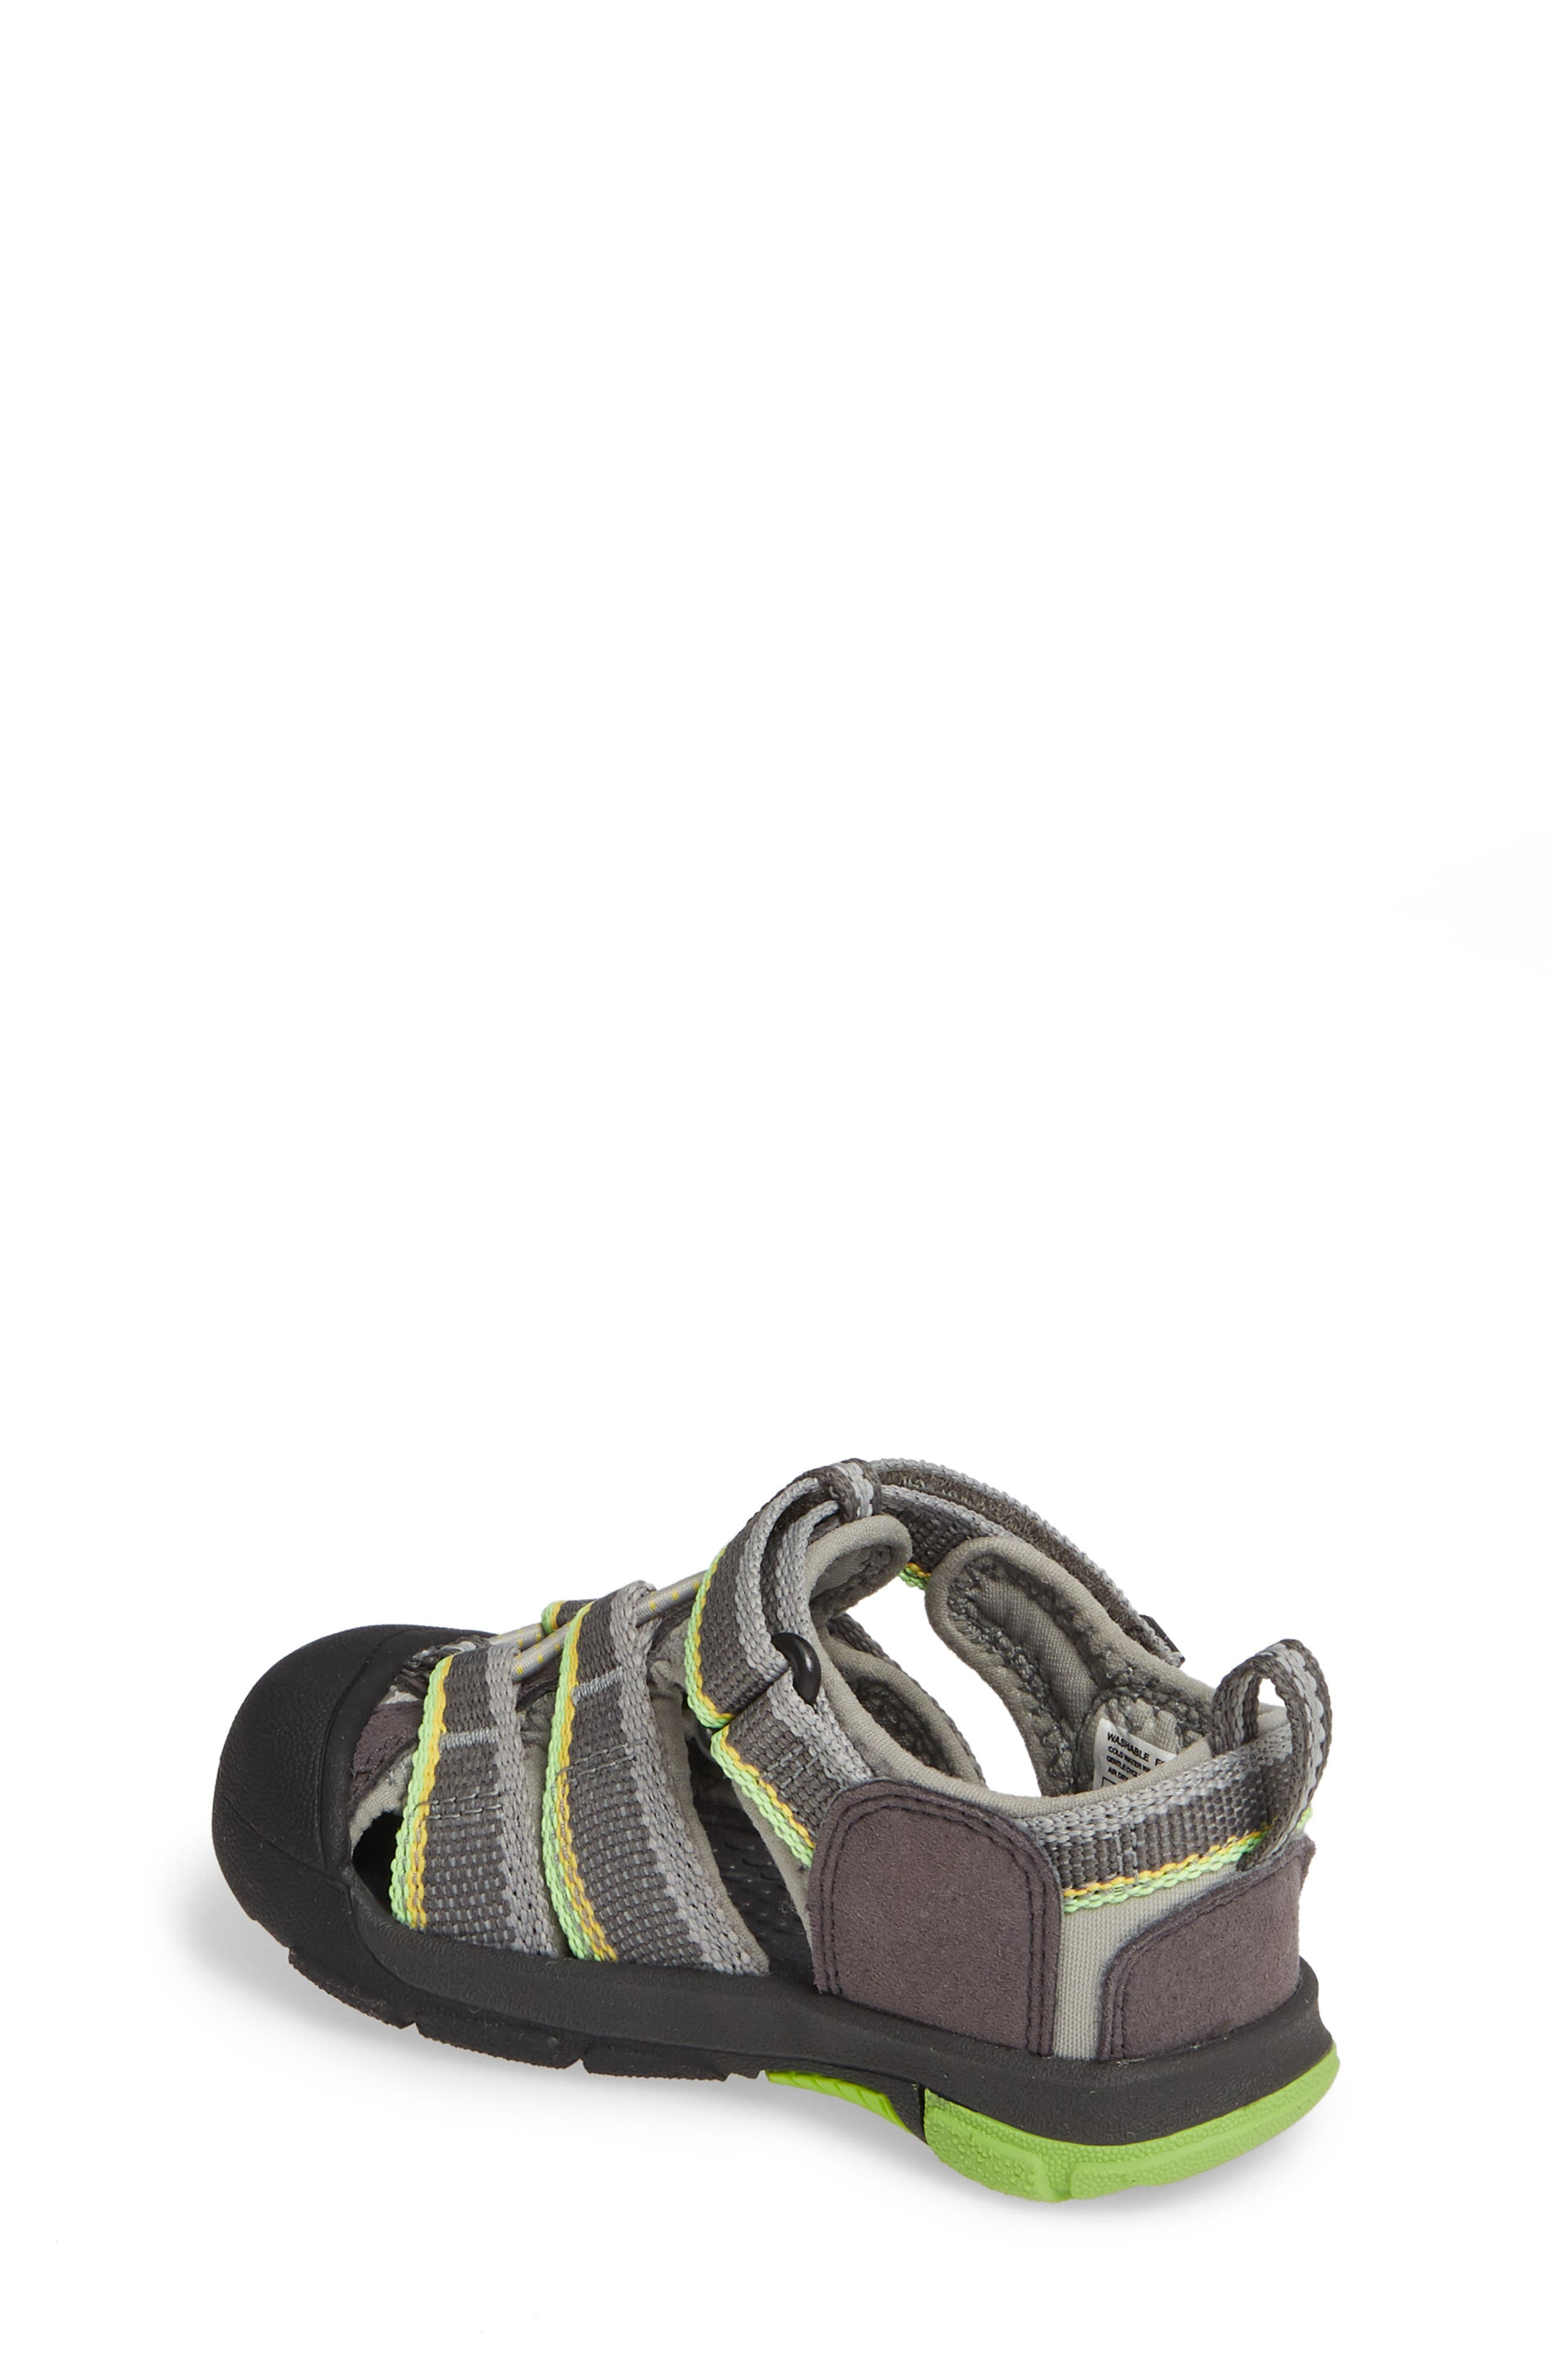 ,                             'Newport H2' Water Friendly Sandal,                             Alternate thumbnail 48, color,                             030